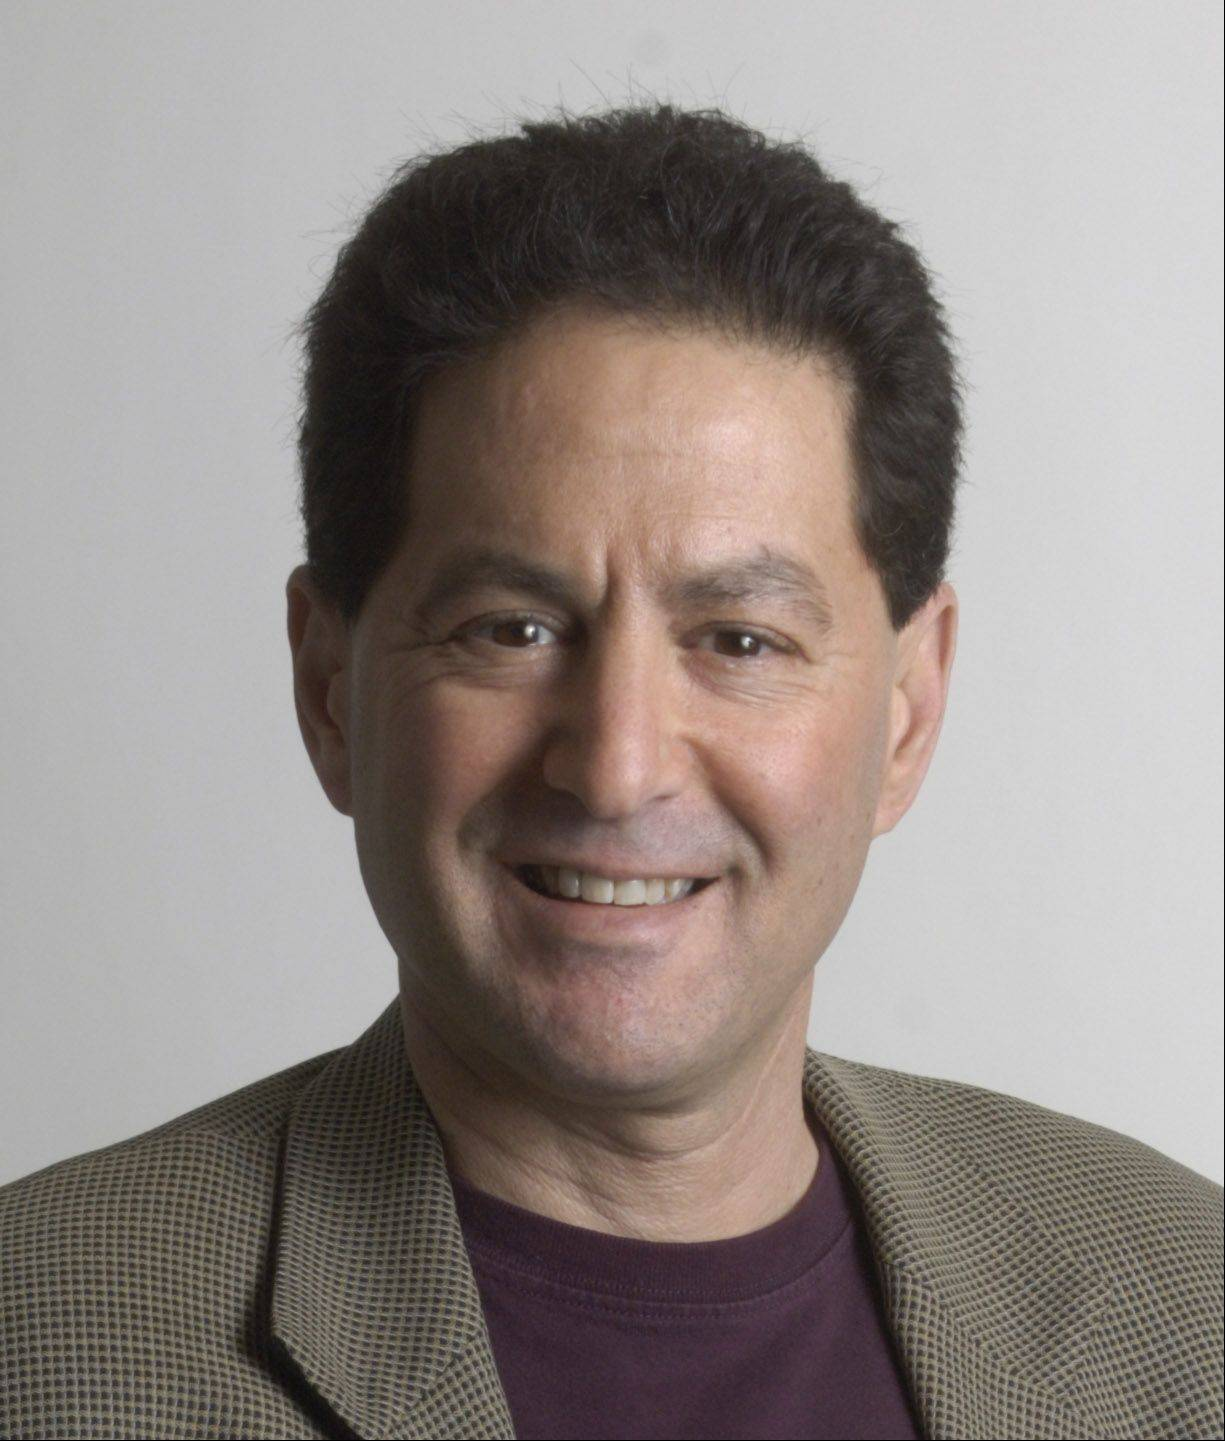 Daily Herald sports columnist Barry Rozner has been named a Distinguished Alumni by Northern Illinois University.